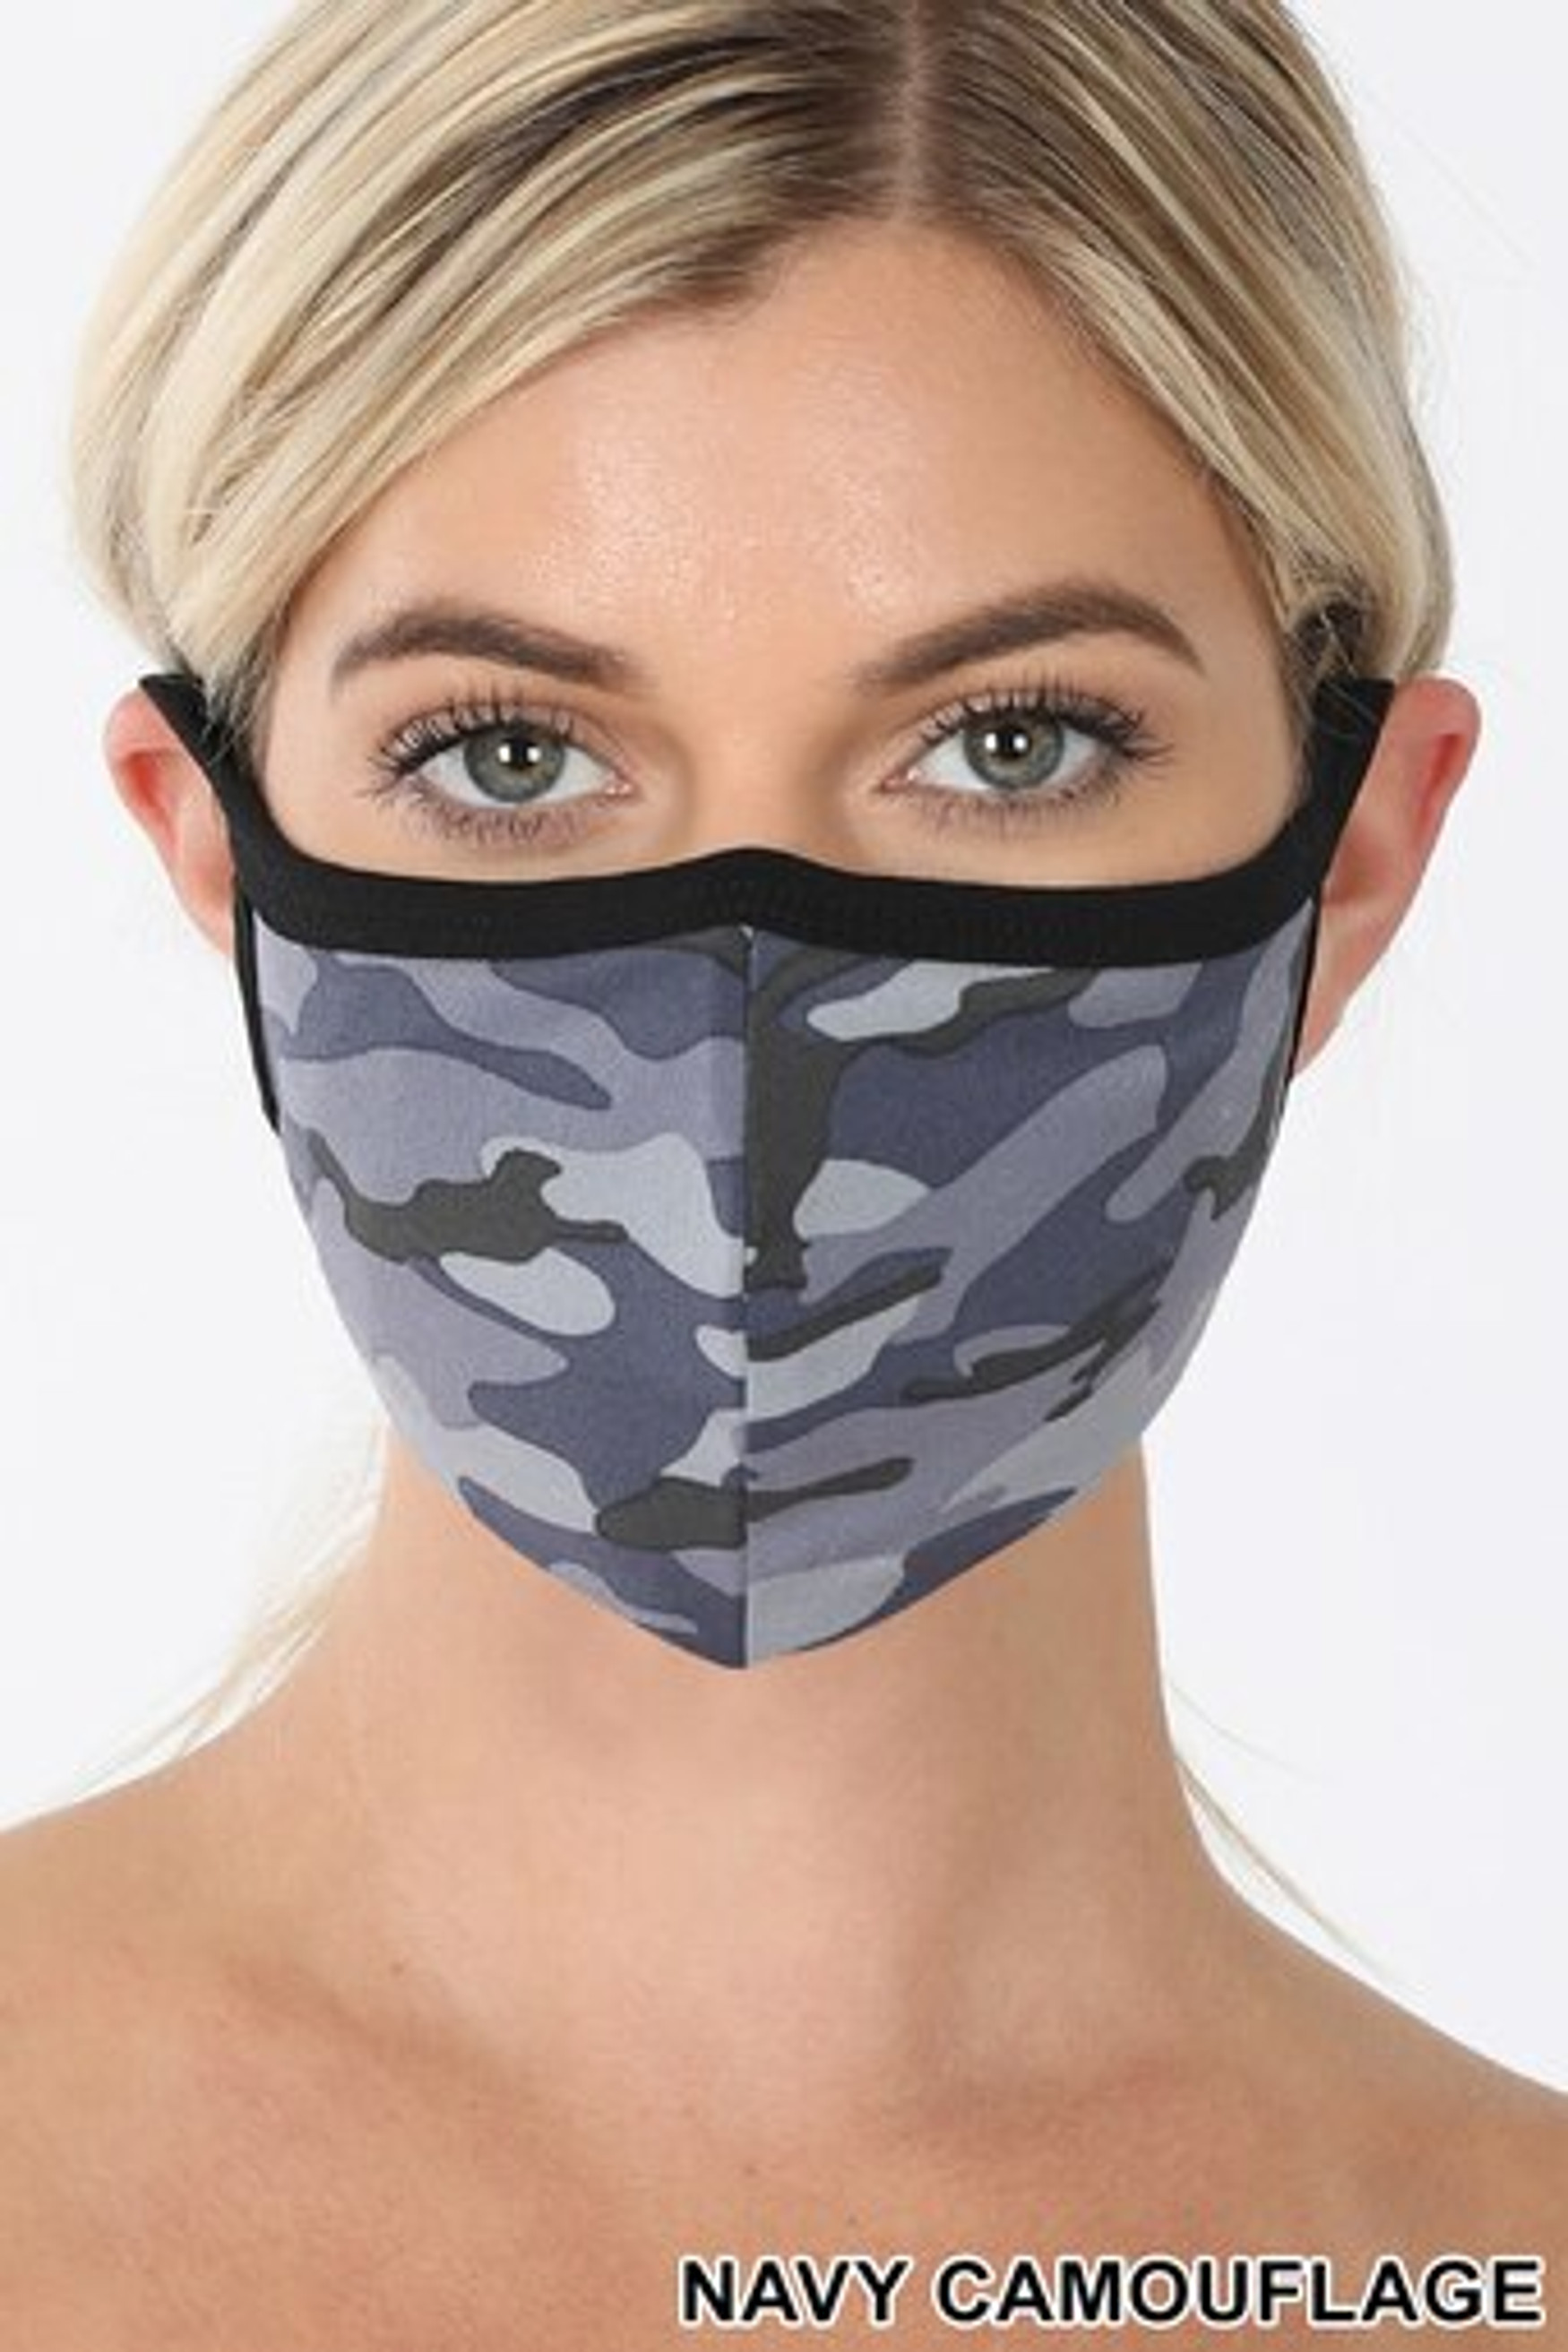 Navy Camouflage Face Mask - Imported